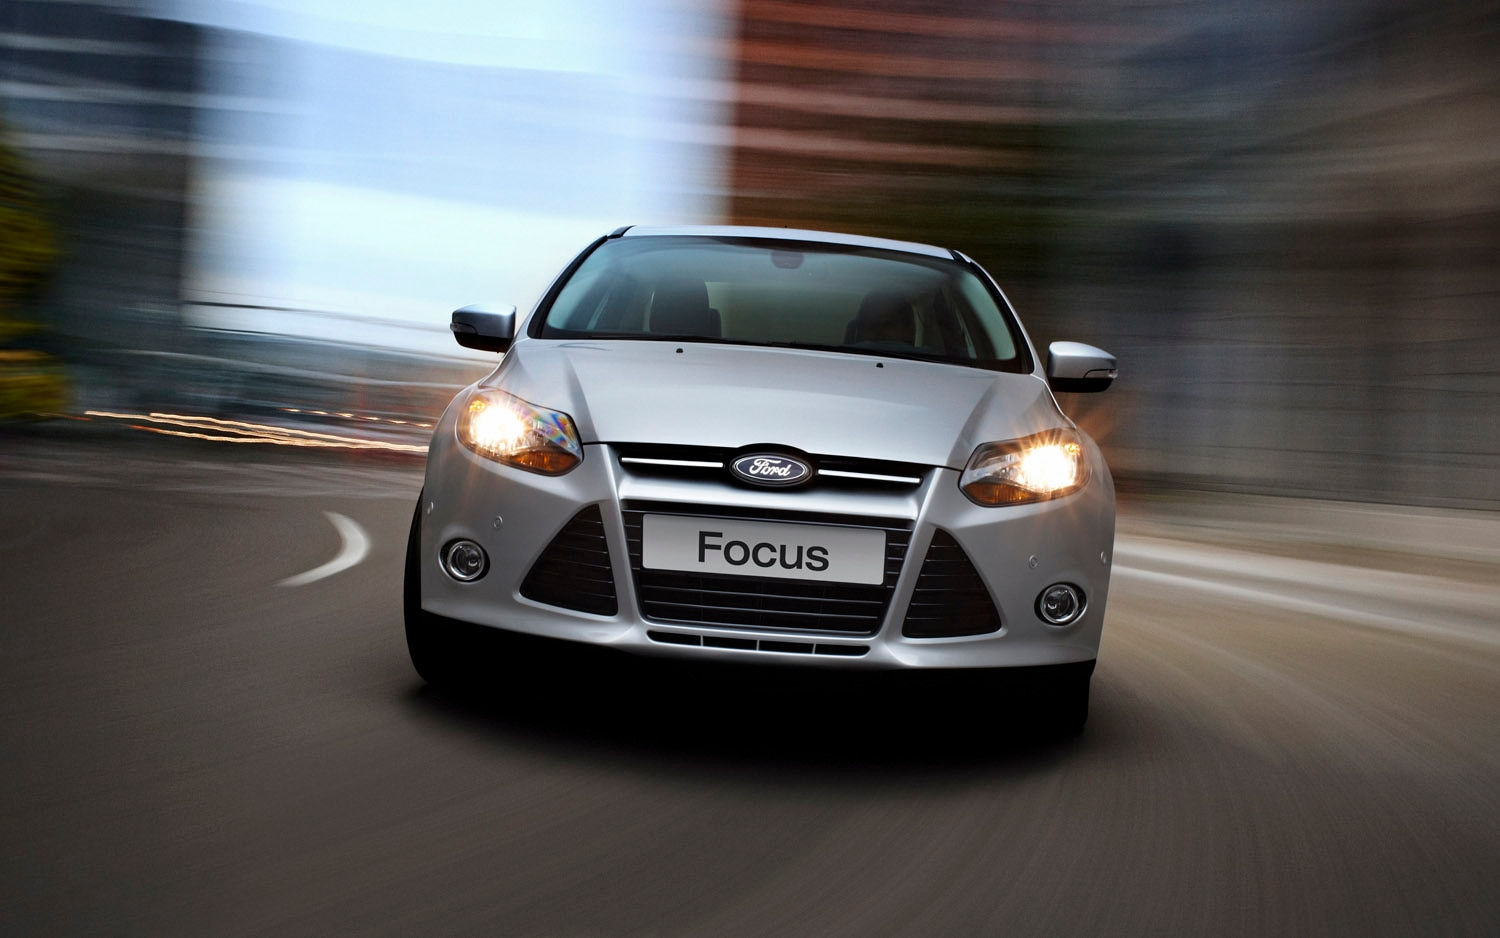 2013 Ford Focus Front View1